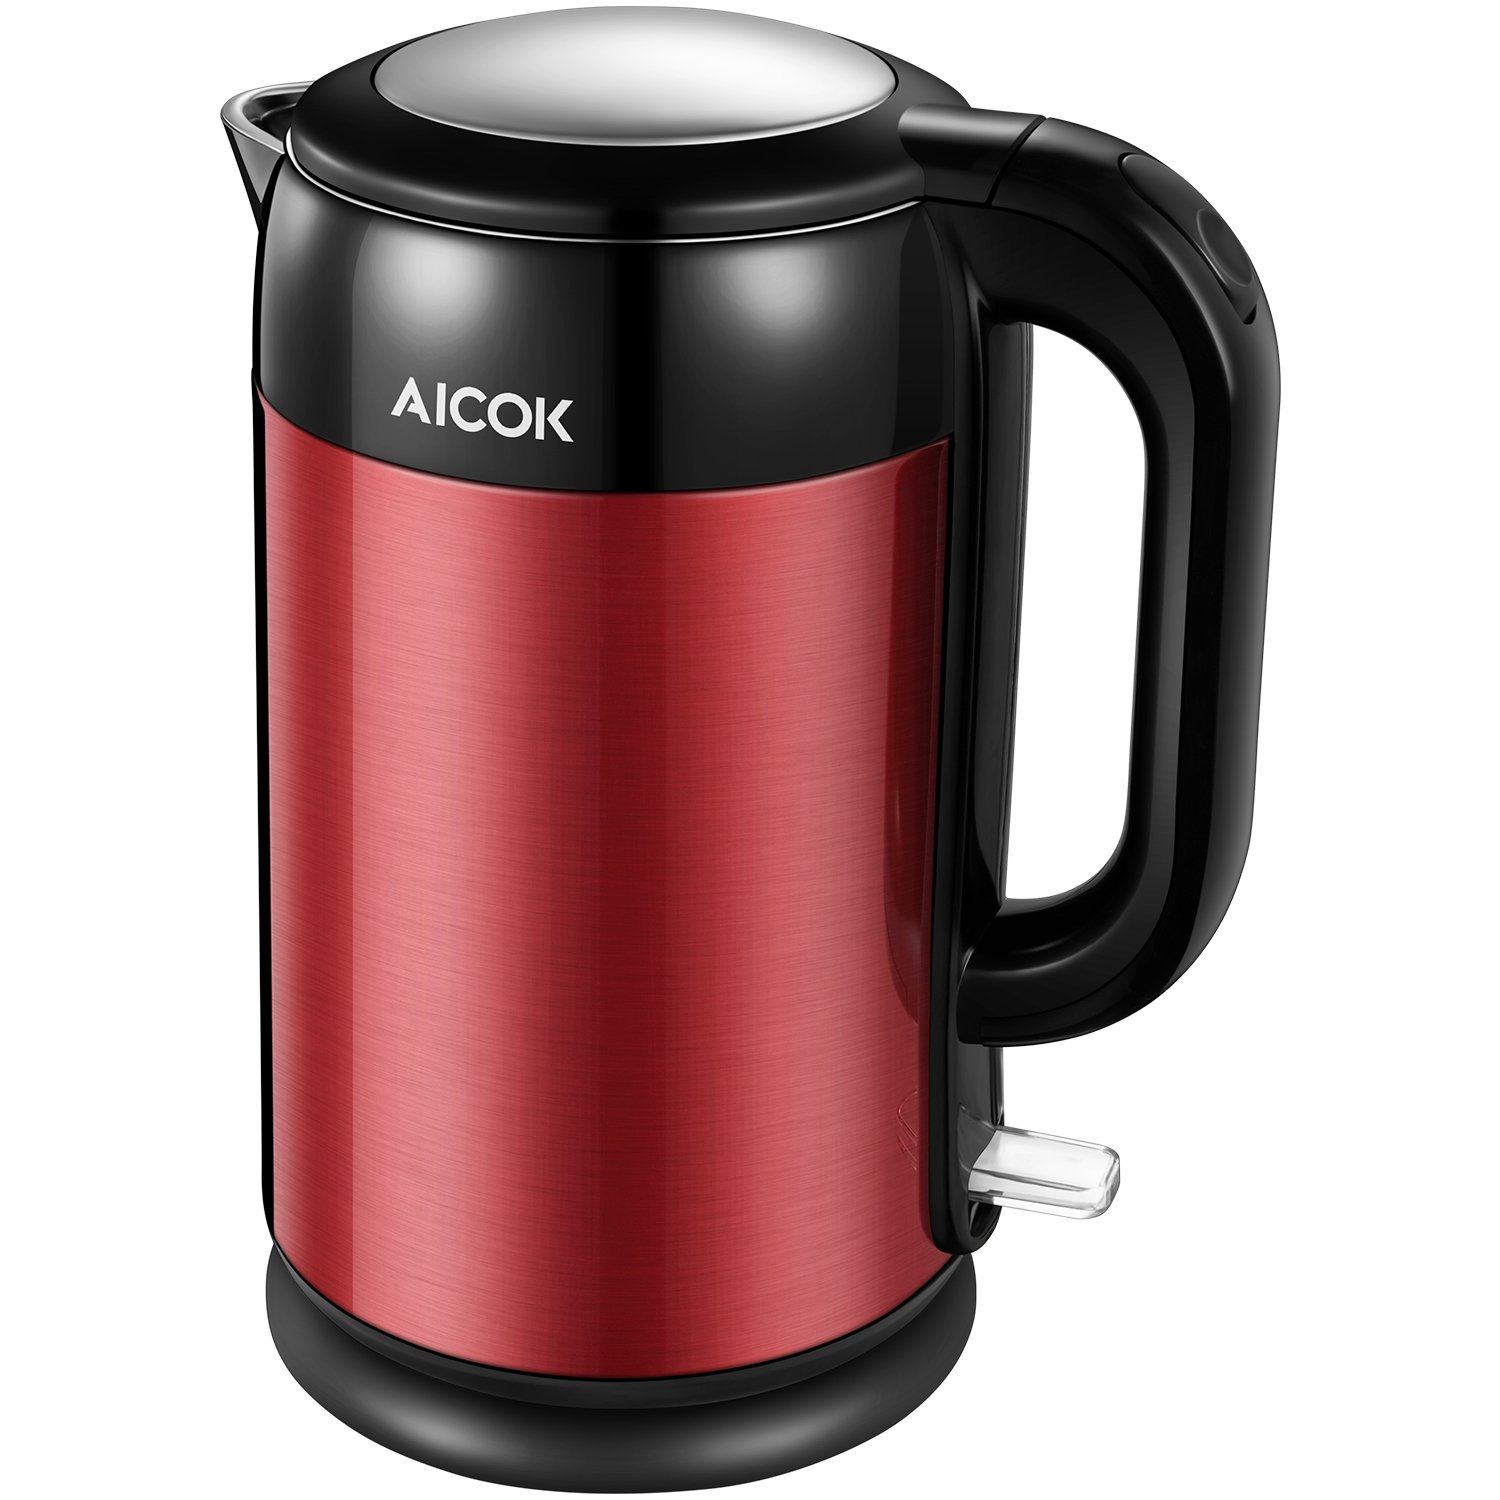 Electric Kettle The Original Stainless Steel Double Wall Water Kettle, Electric Cordless Kettle with Auto Shut-Off and Boil Dry Protection, 1.7L BPA Free by Aicok